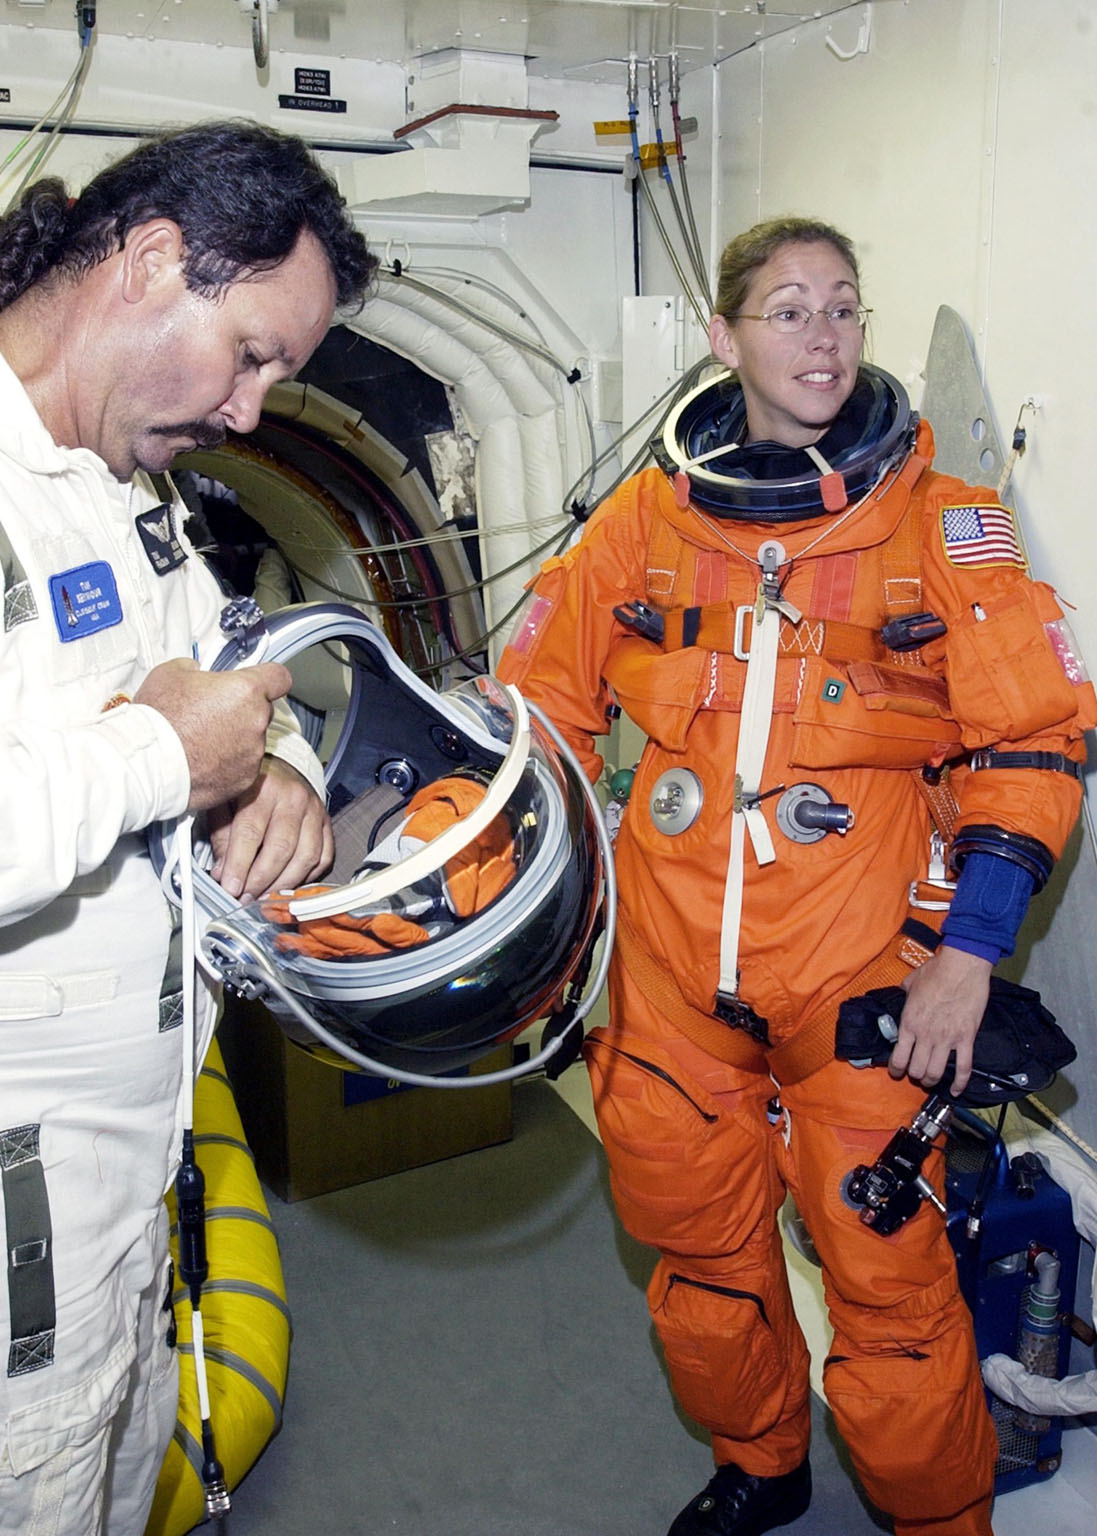 KENNEDY SPACE CENTER, FLA. -- In the White Room at Launch Pad 39B, STS-112 Mission Specialist Sandra Magnus, Ph.D., receives assistance with her spacesuit during a simulated launch countdown, part of Terminal Countdown Demonstration Test activities, a dress rehearsal for launch. Launch of STS-112 aboard Space Shuttle Atlantis is scheduled for Oct. 2, between 2 and 6 p.m. EDT. STS-112 is the 15th assembly mission to the International Space Station. Atlantis will be carrying the S1 Integrated Truss Structure, the first starboard truss segment, which will be attached to the central truss segment, S0, and the Crew and Equipment Translation Aid (CETA) Cart A. The CETA is the first of two human-powered carts that will ride along the ISS railway, providing mobile work platforms for future spacewalking astronauts.